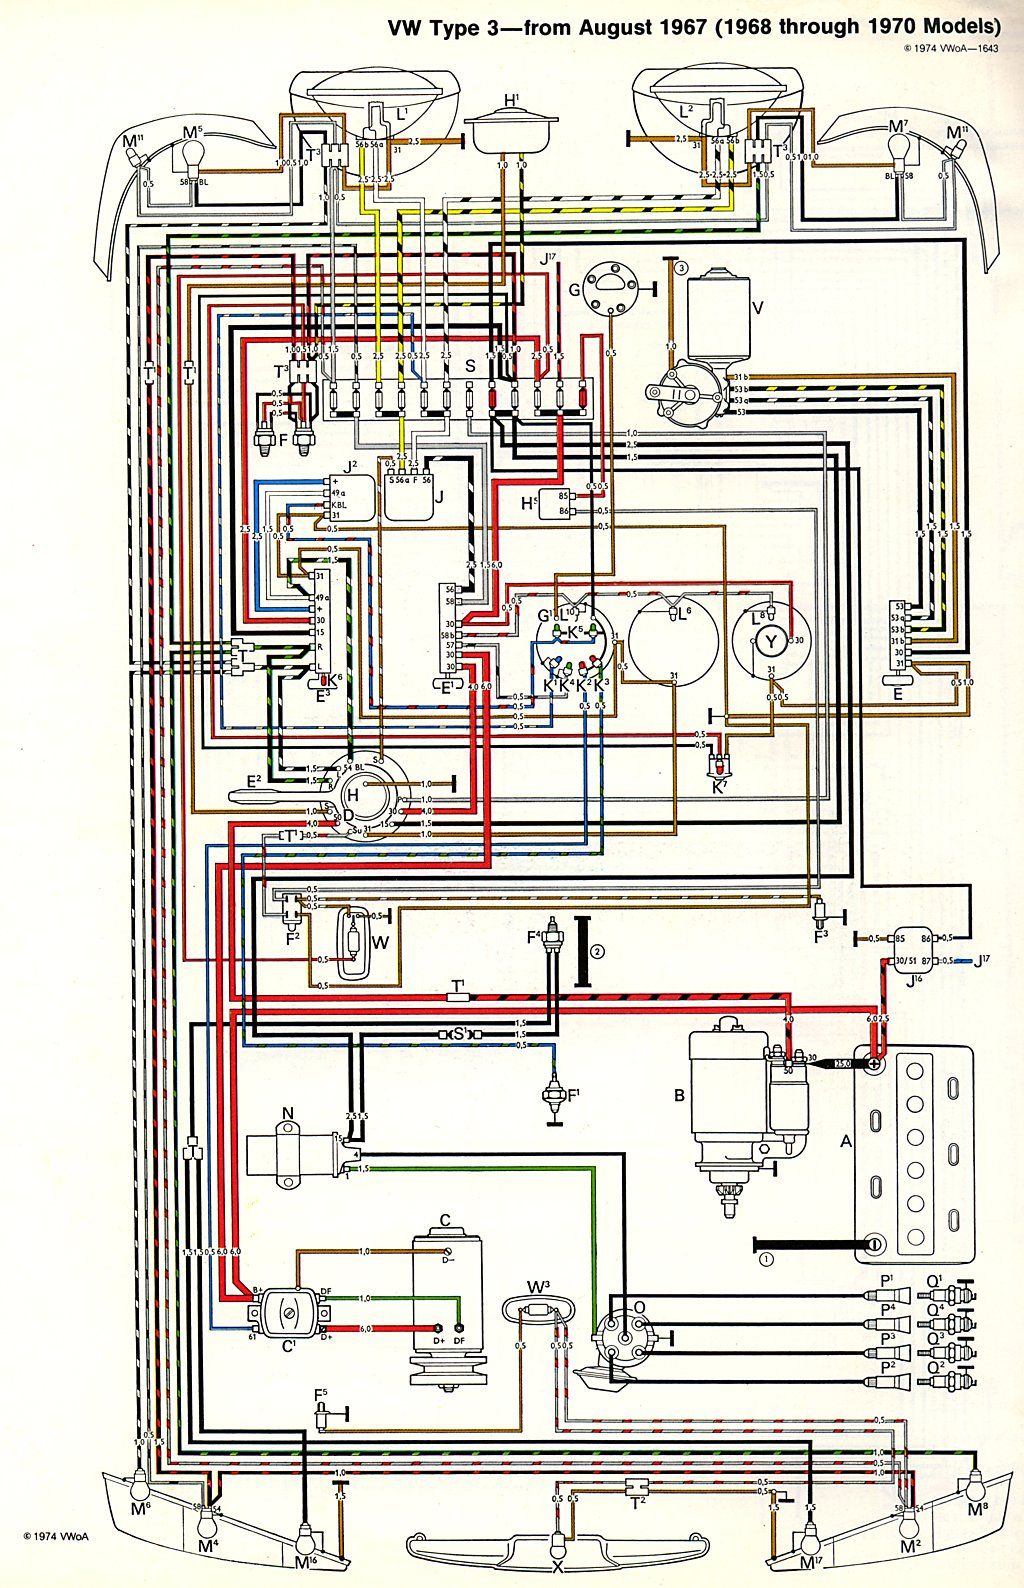 thesamba com type 3 wiring diagrams rh thesamba com 1969 VW Bus Wiring Harness VW Voltage Regulator Wiring Diagram